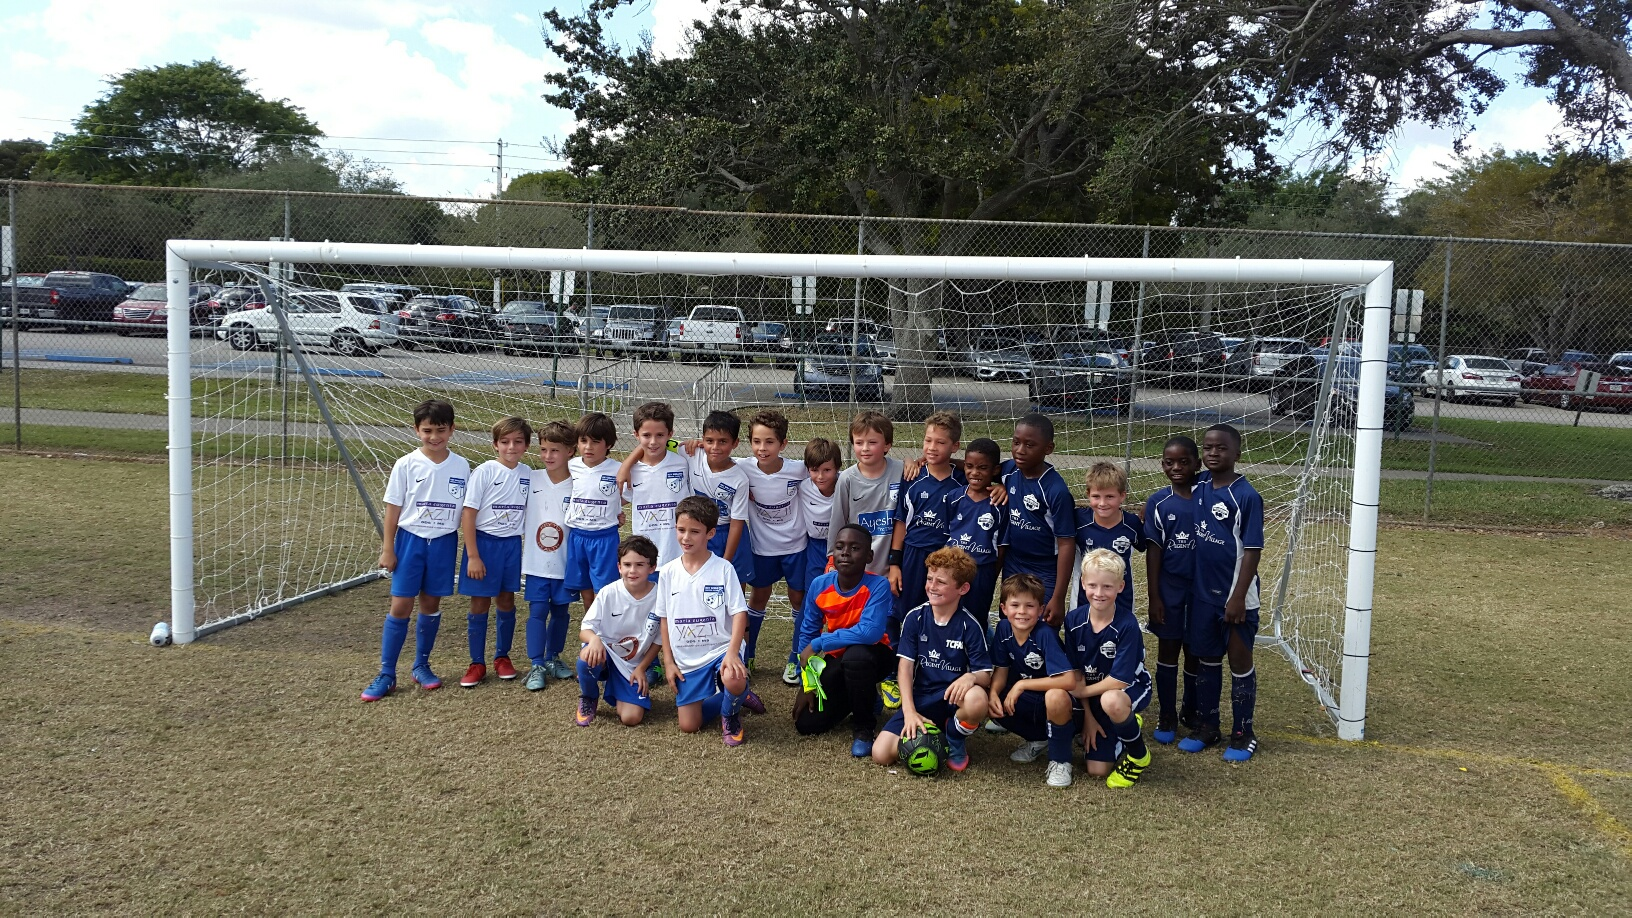 Boys U9 and Key Biscayne SC 2008 Premier.jpg